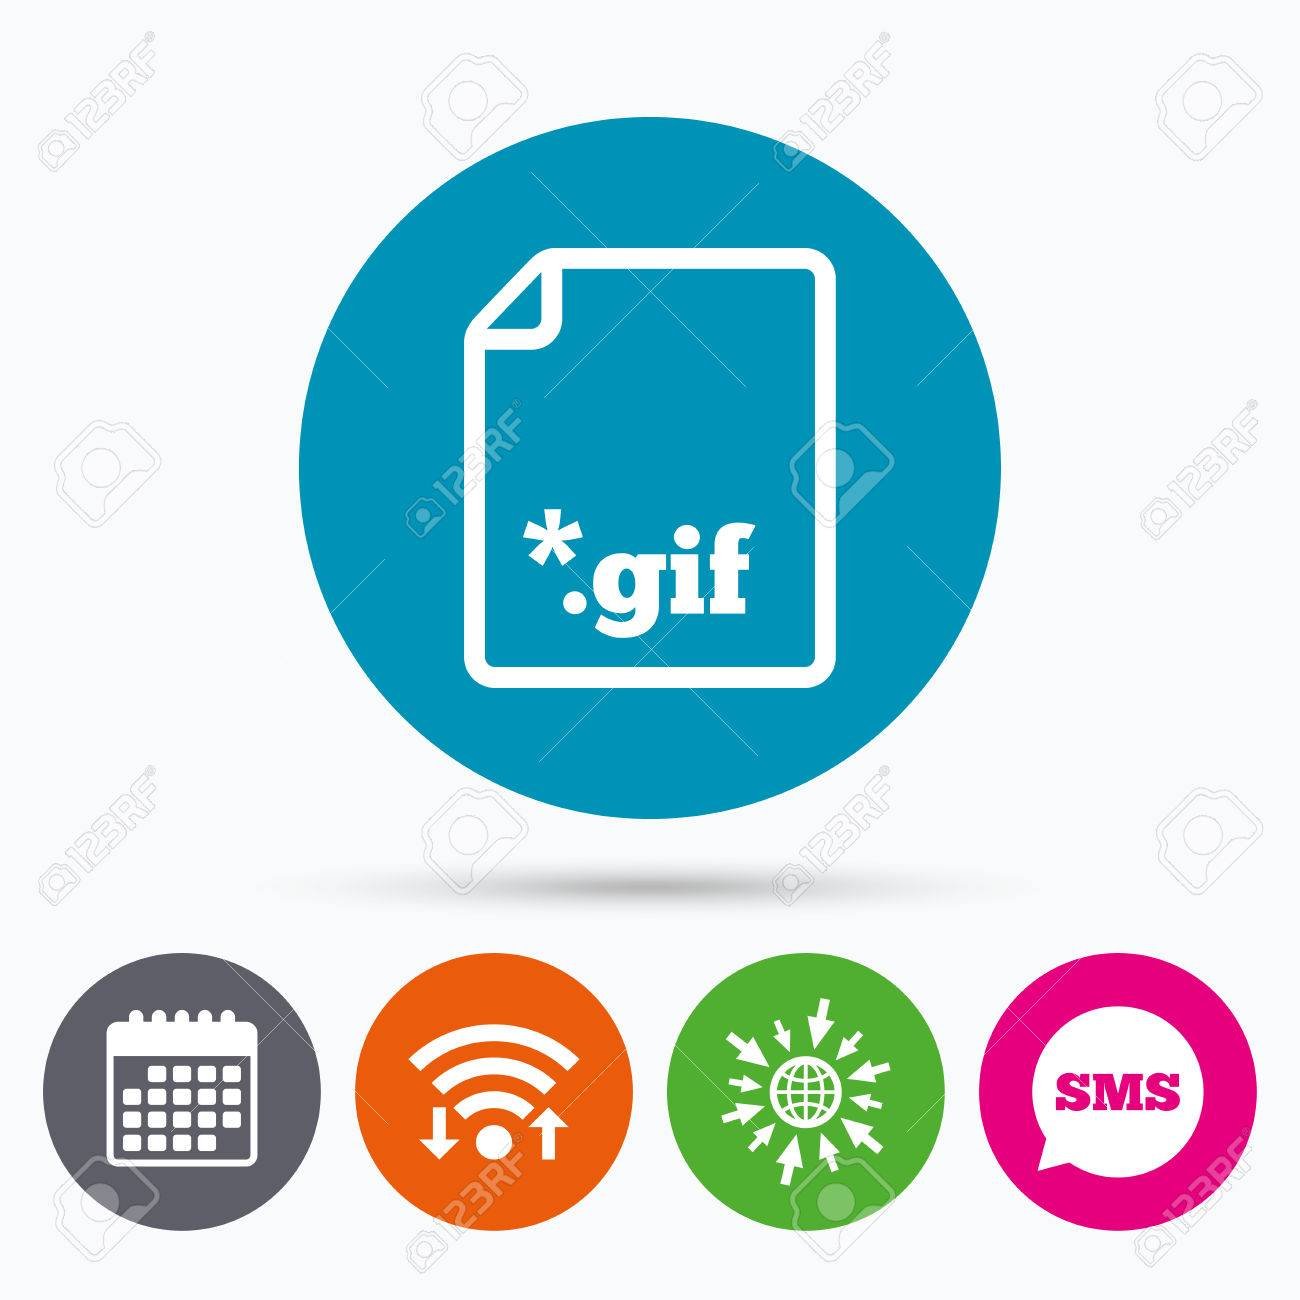 Wifi, Sms and calendar icons  File GIF sign icon  Download image